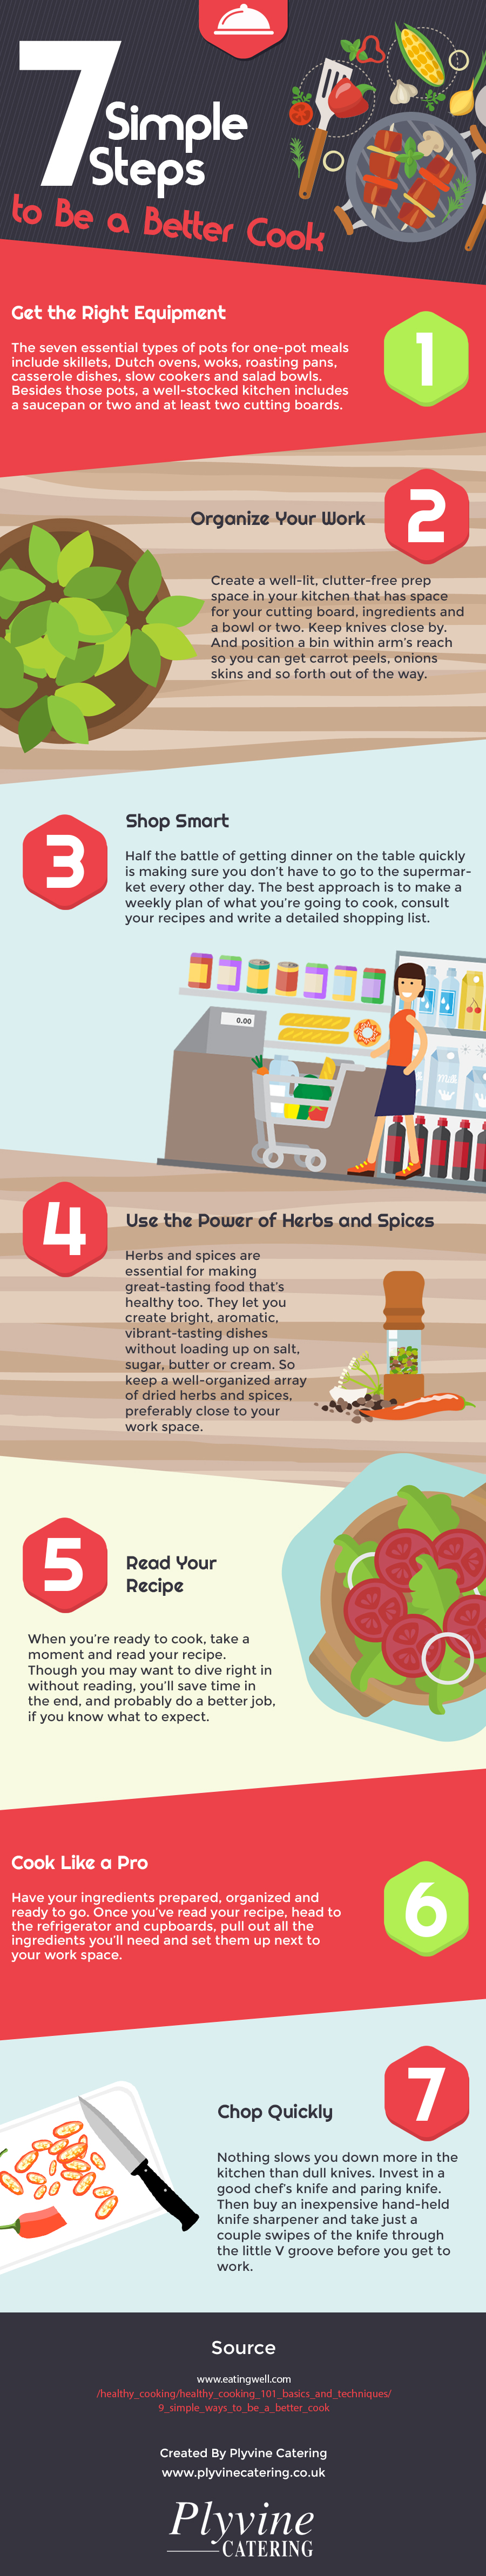 7 Simple Steps to Be a Better Cook